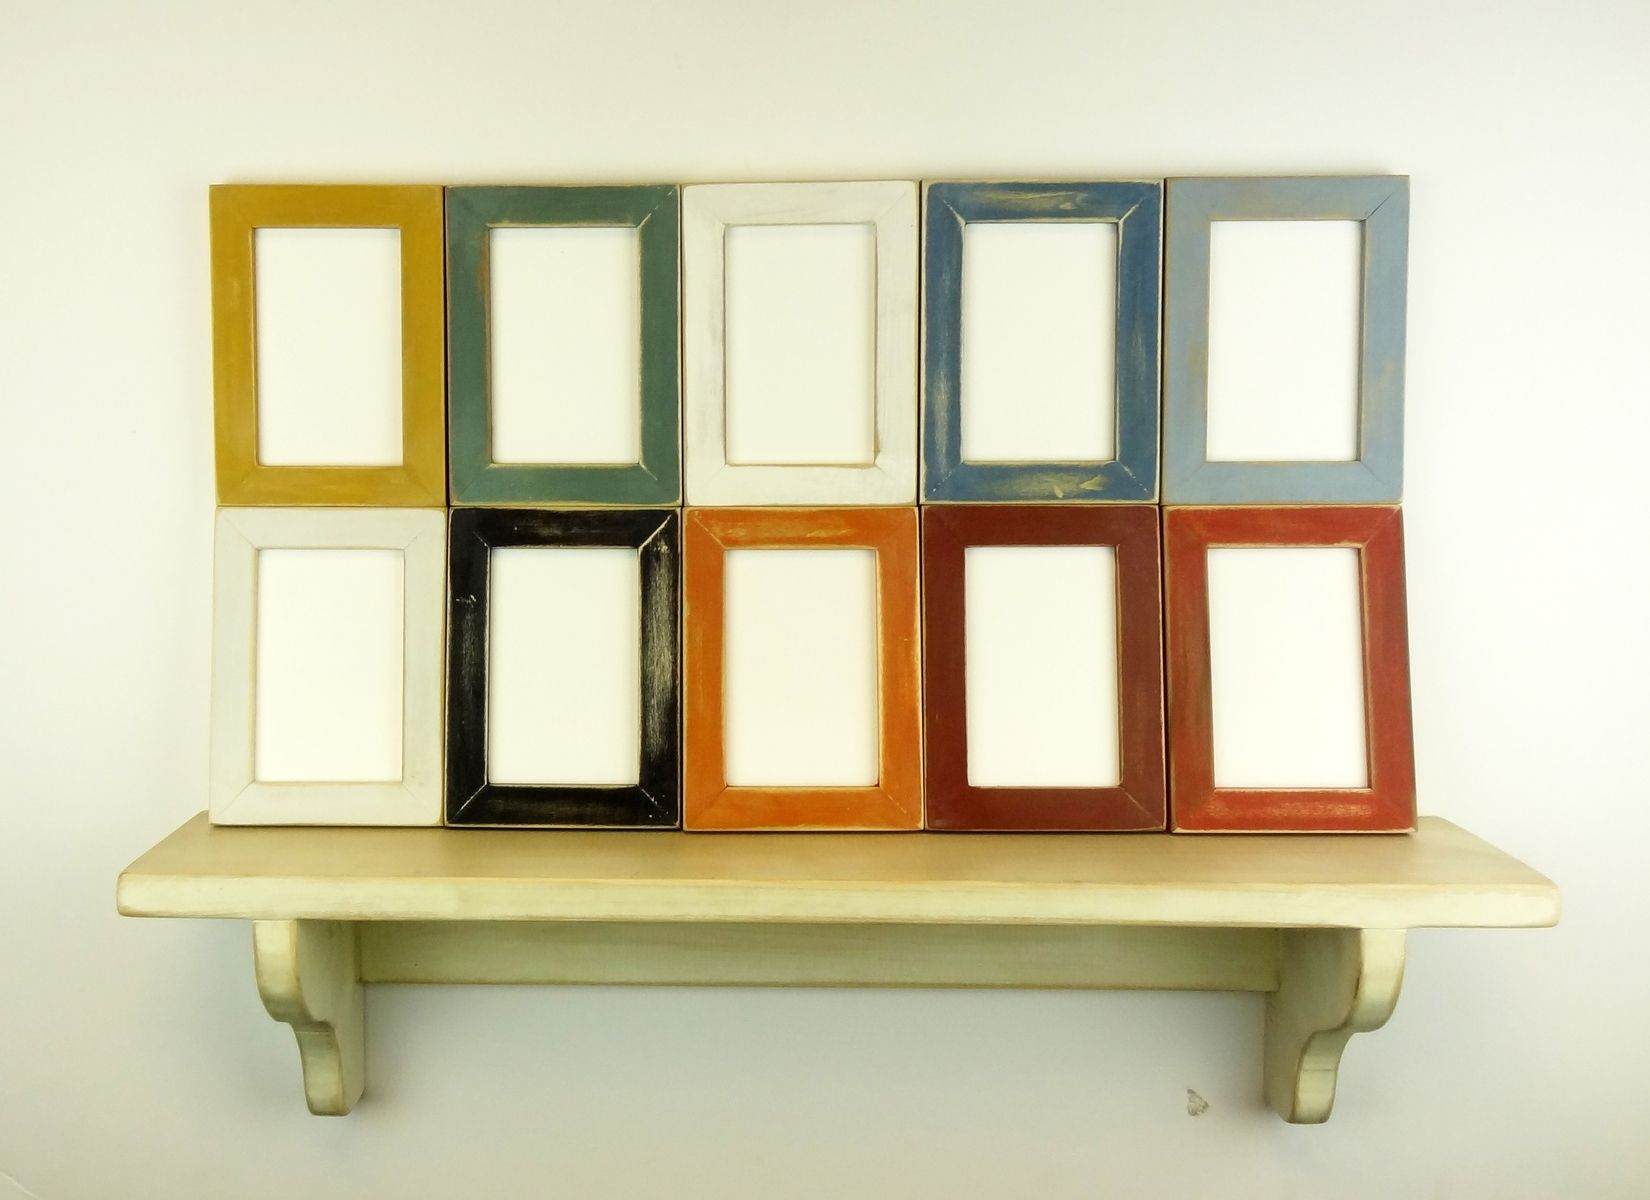 Hand Crafted Handmade Photo Frames - Wall Decor - Handpainted Milk ...